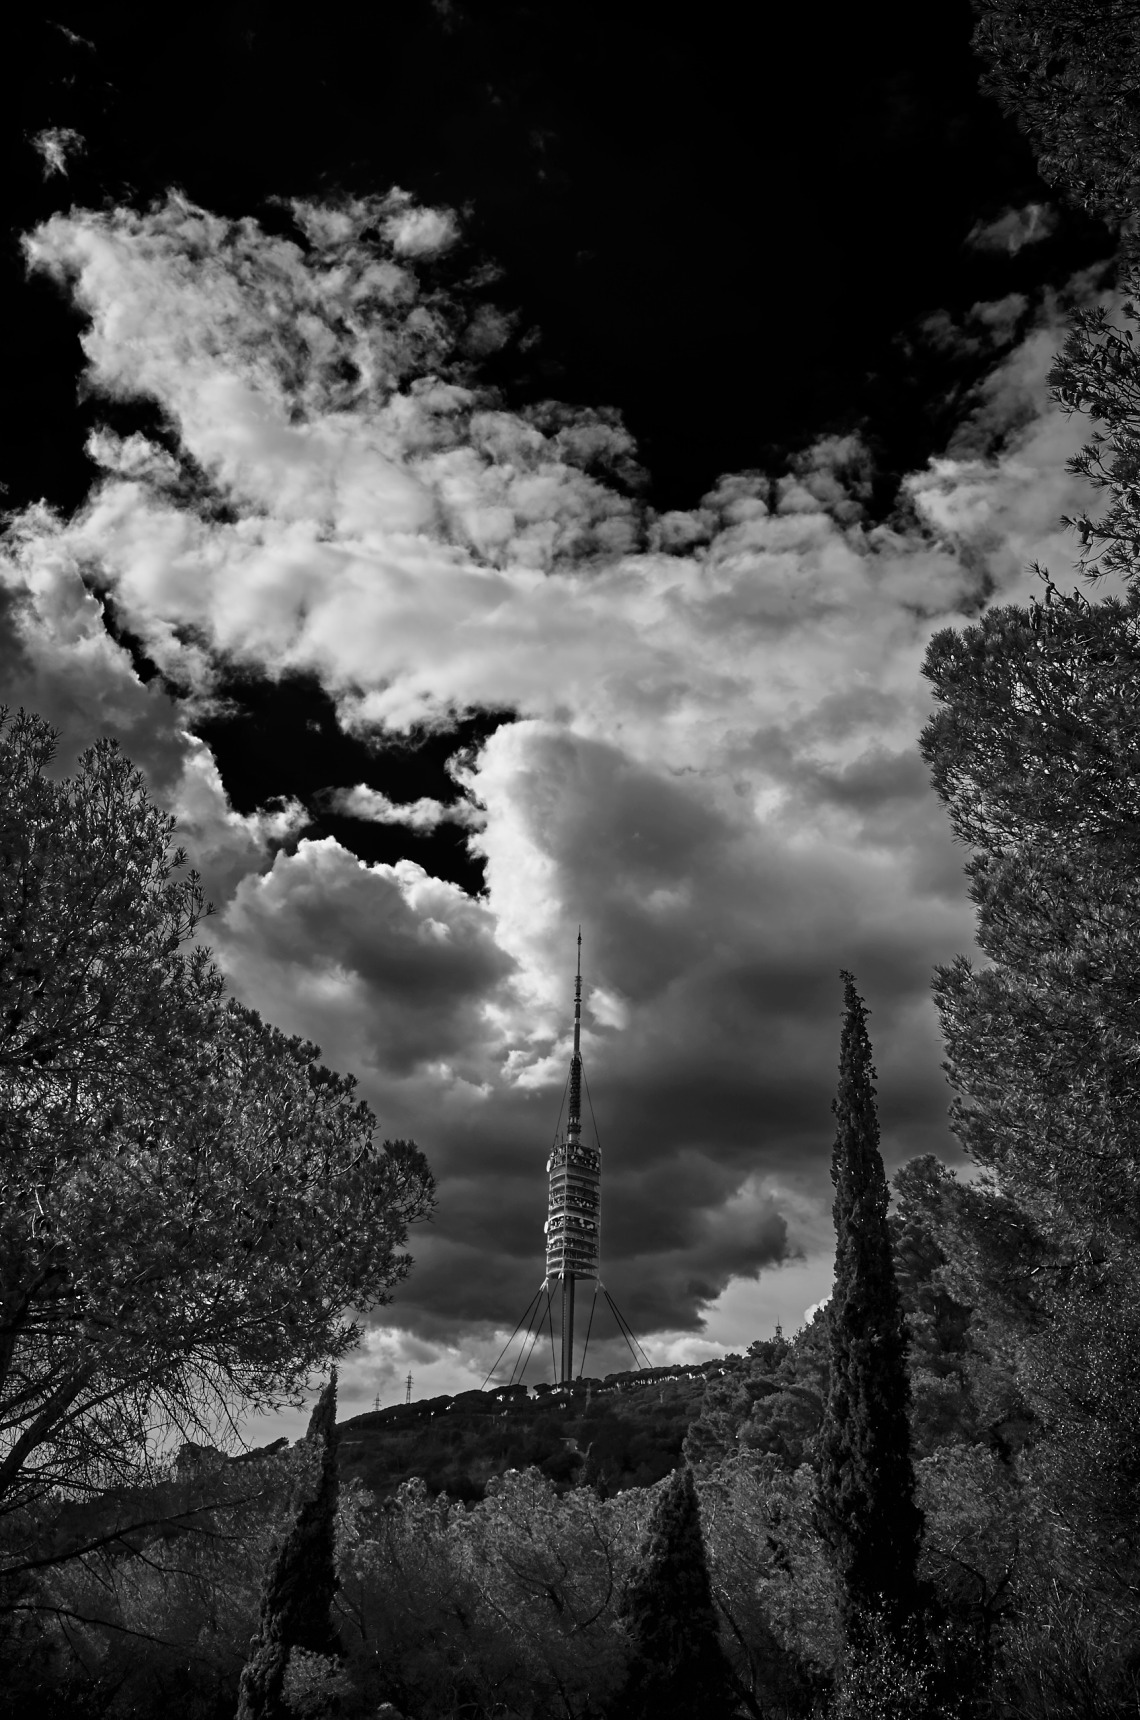 Communication towers at the Collserola